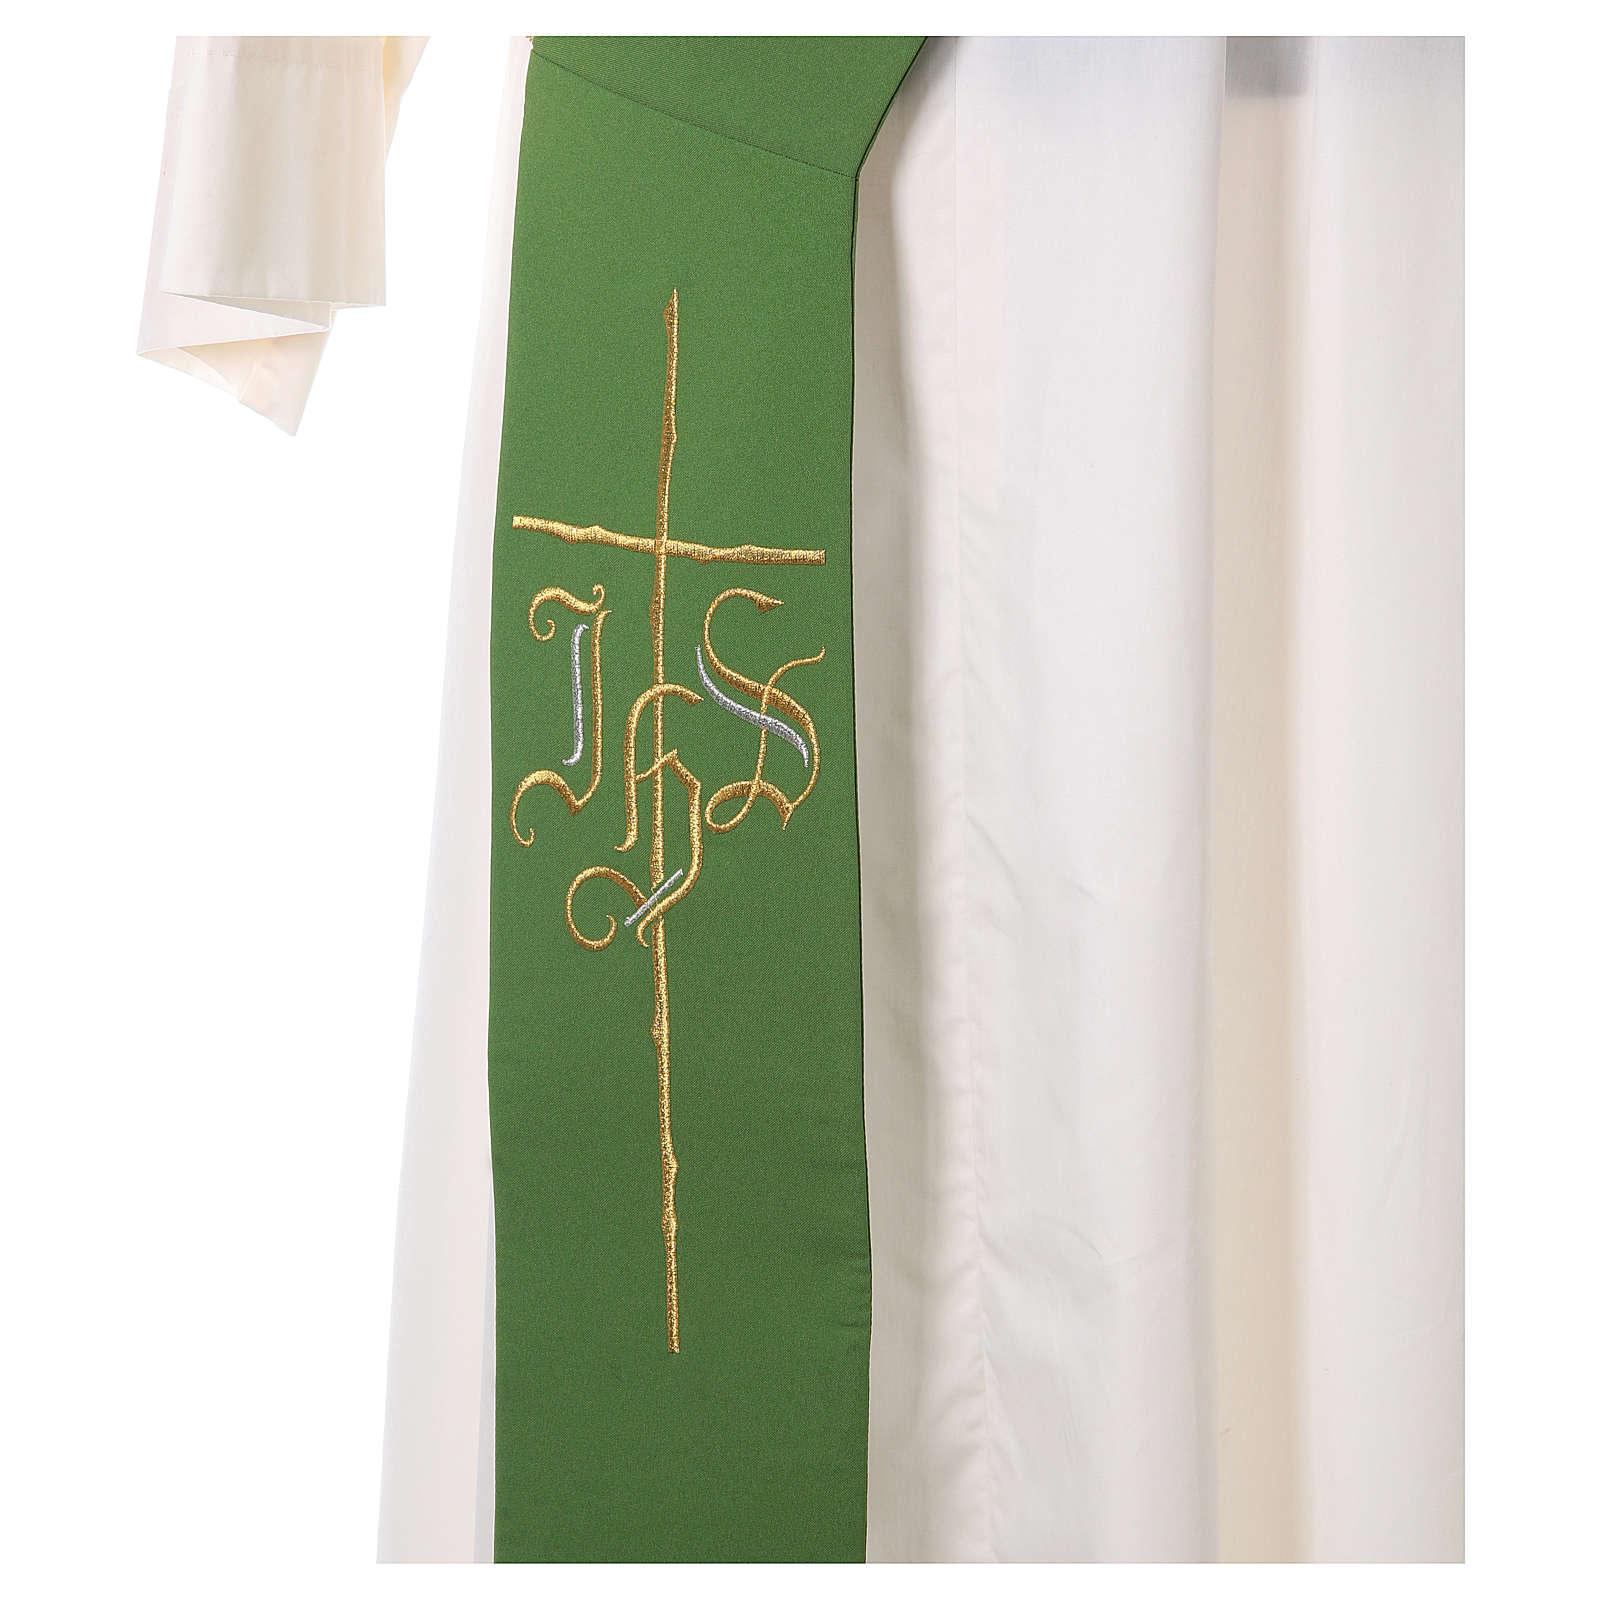 Diaconal stole in polyester with IHS and cross symbols 4